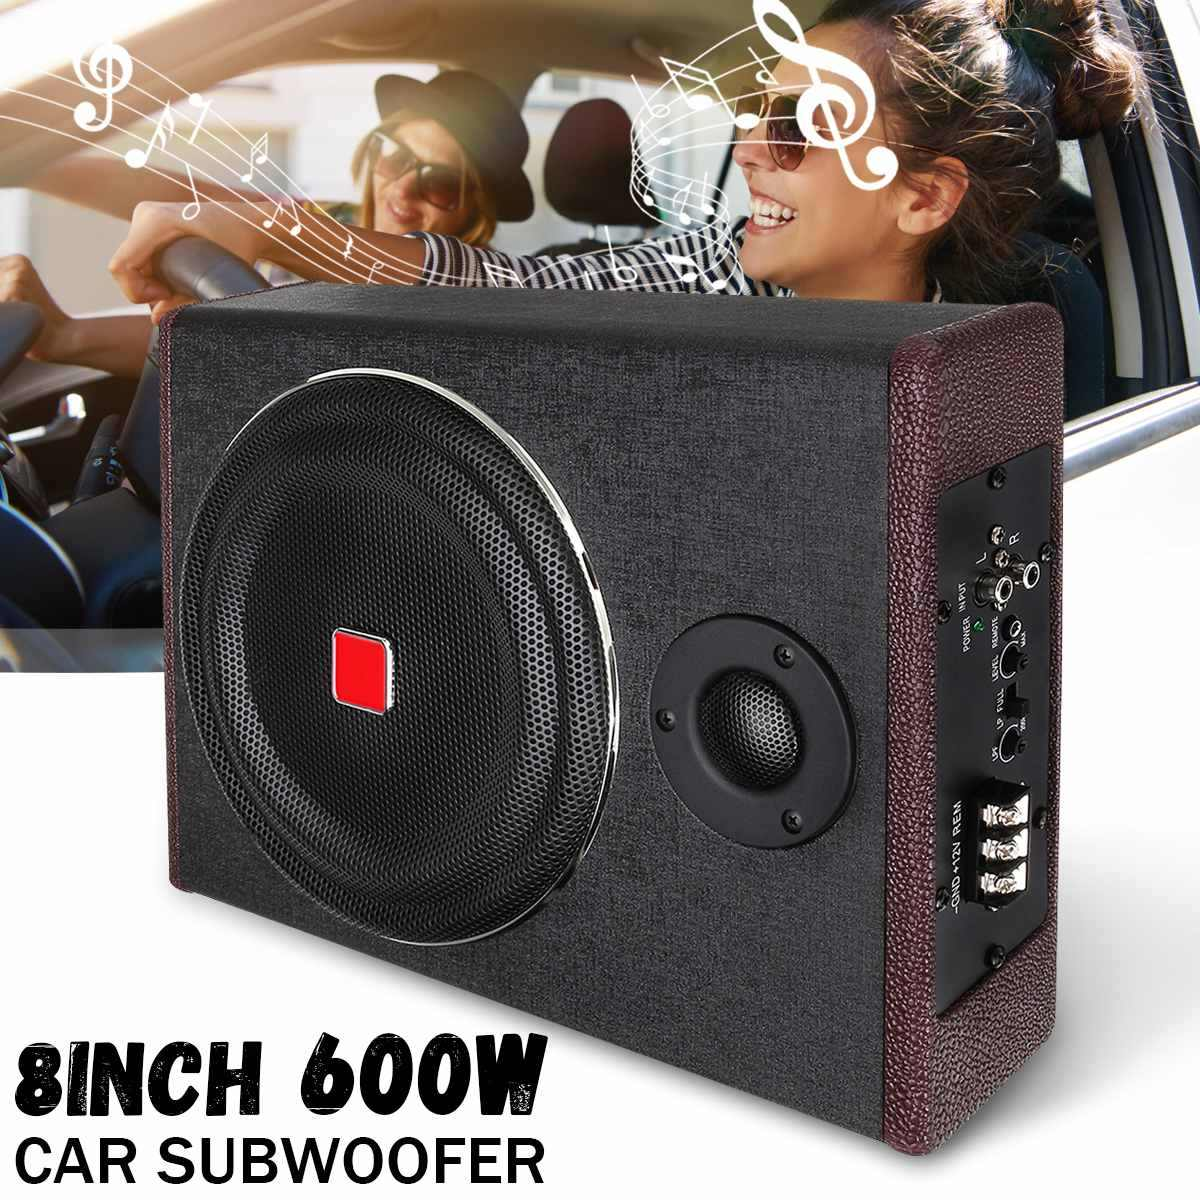 8 Inch 600W Car Subwoofers Car Amplifier Subwoofers Car Speaker Active Subwoofer Car Under Seat Slim Sub Woofer AMP Super Bass